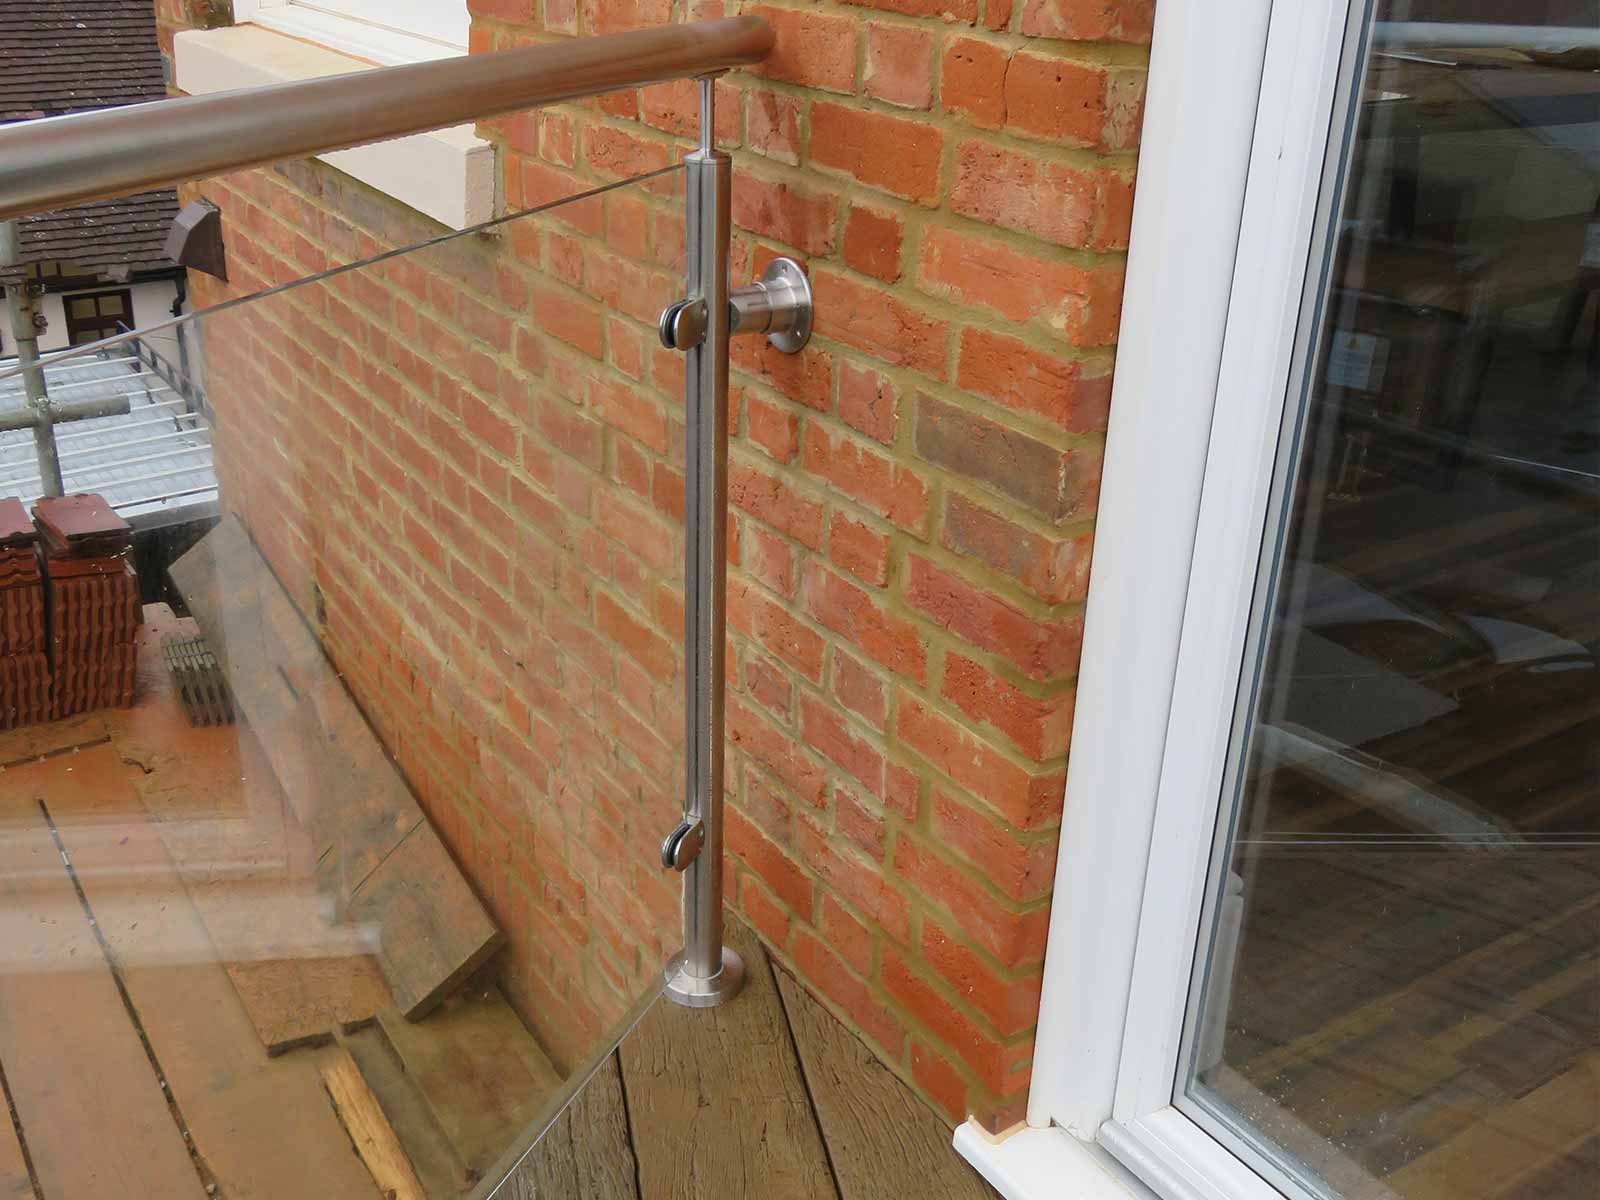 roof terrace glass steel balustrades fixed to brick